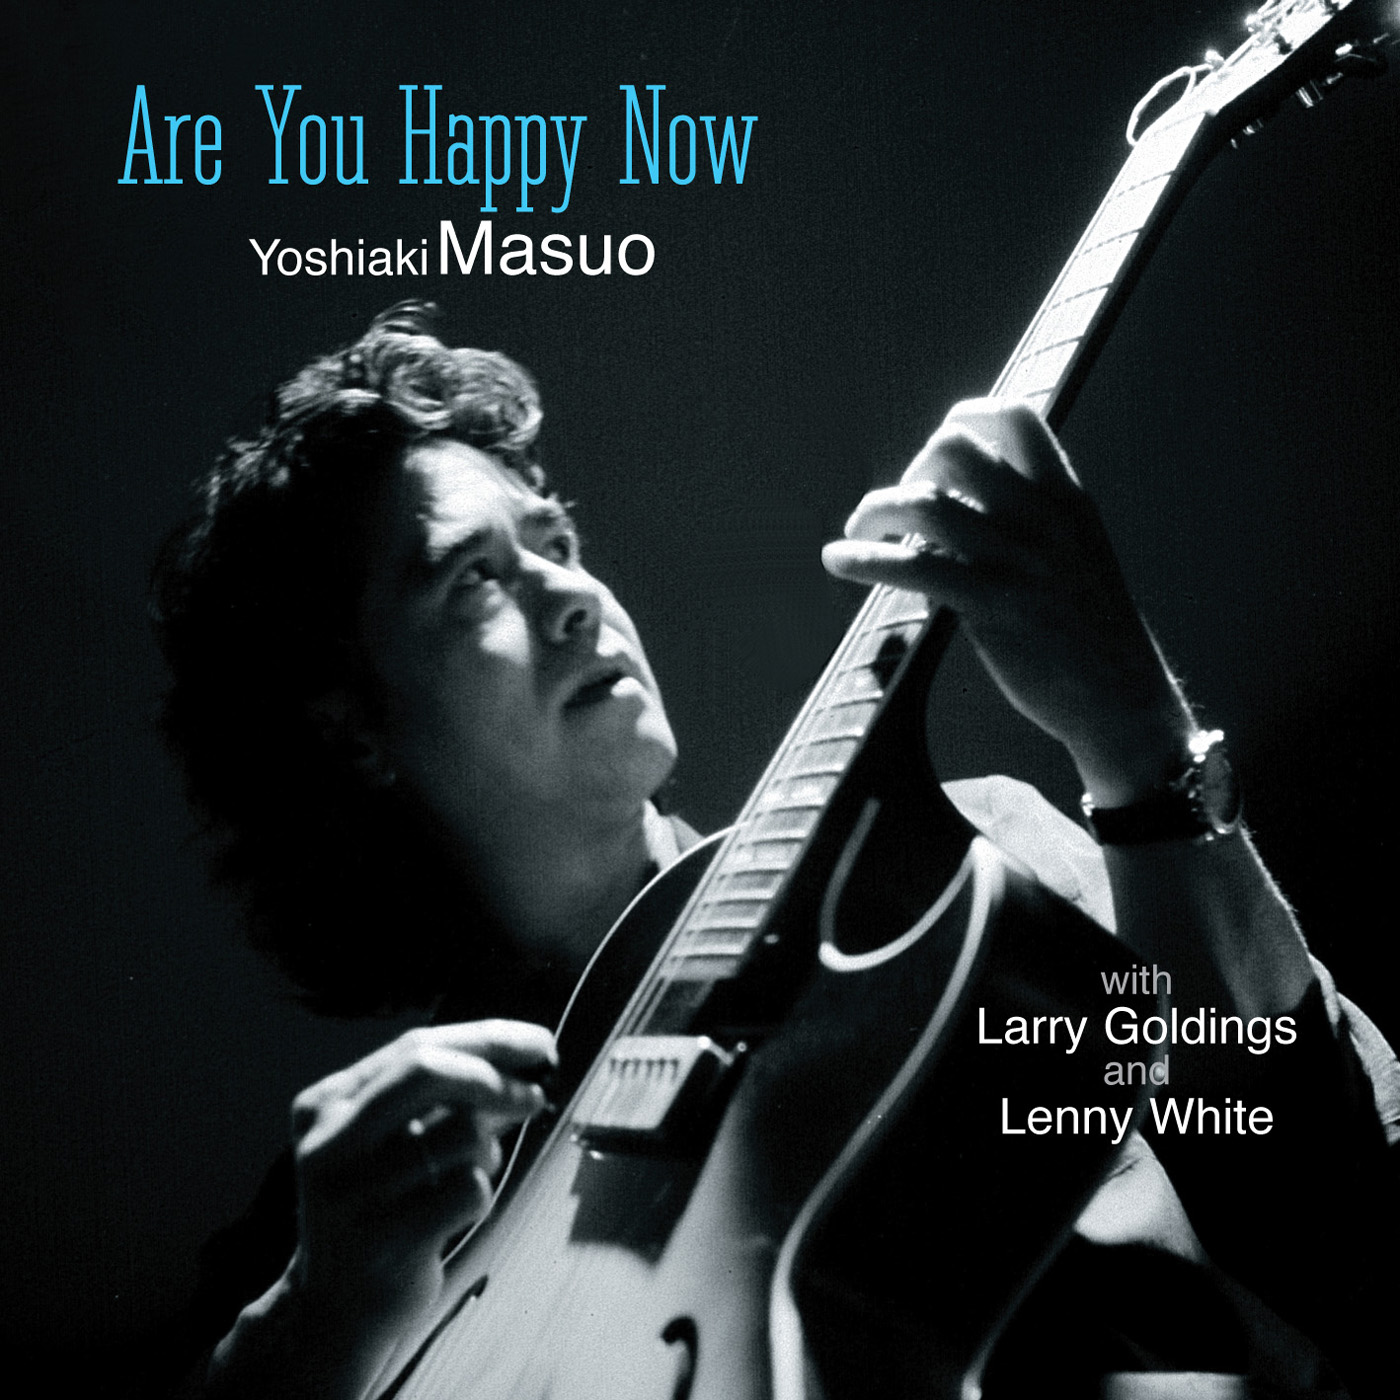 Are You Happy Now by Yoshiaki Masuo cover